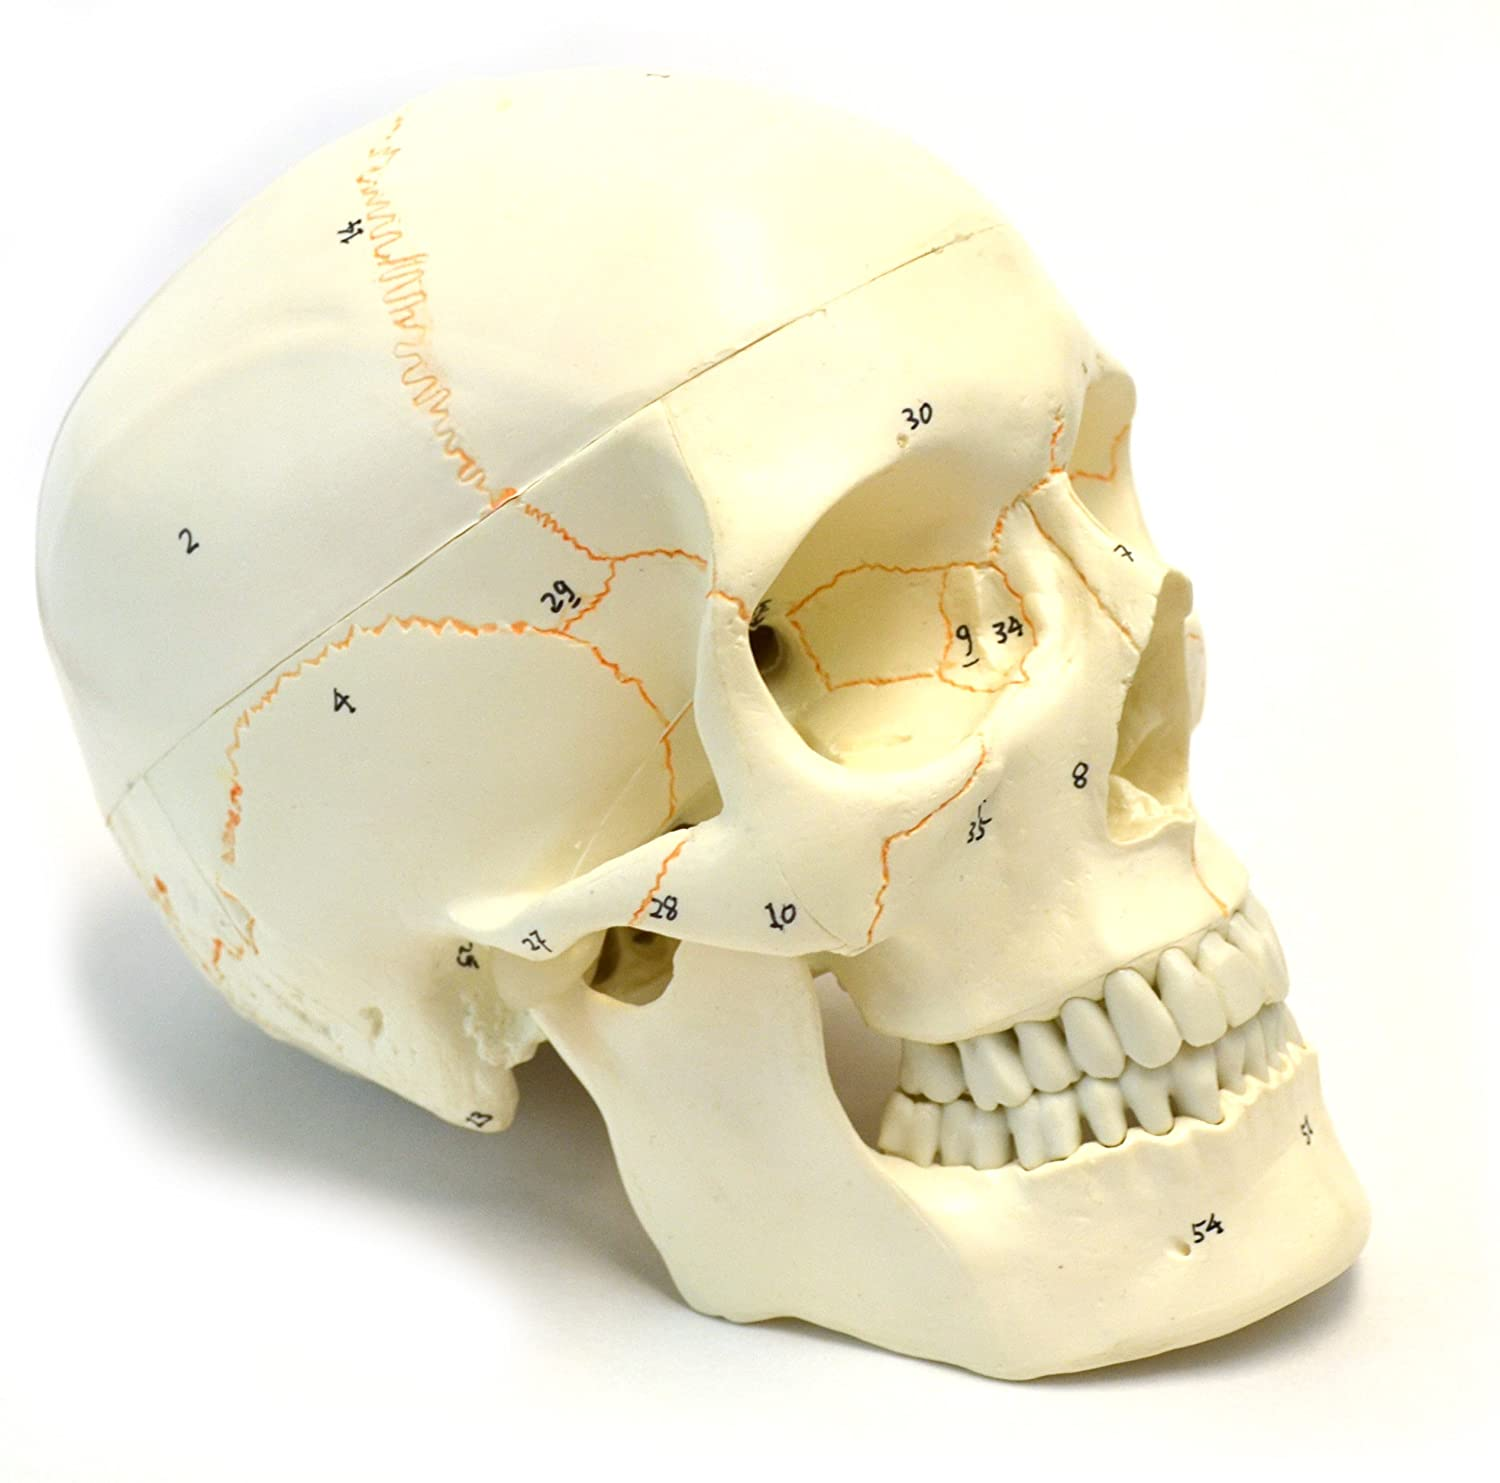 Numbered Human Adult Skull Anatomical Model, Medical Quality, Life Sized (9' Height) - 3 Part - Removable Skull Cap - Shows Most Major Foramen, Fossa, and Canals - Includes Full Set of Teeth hBARSCI